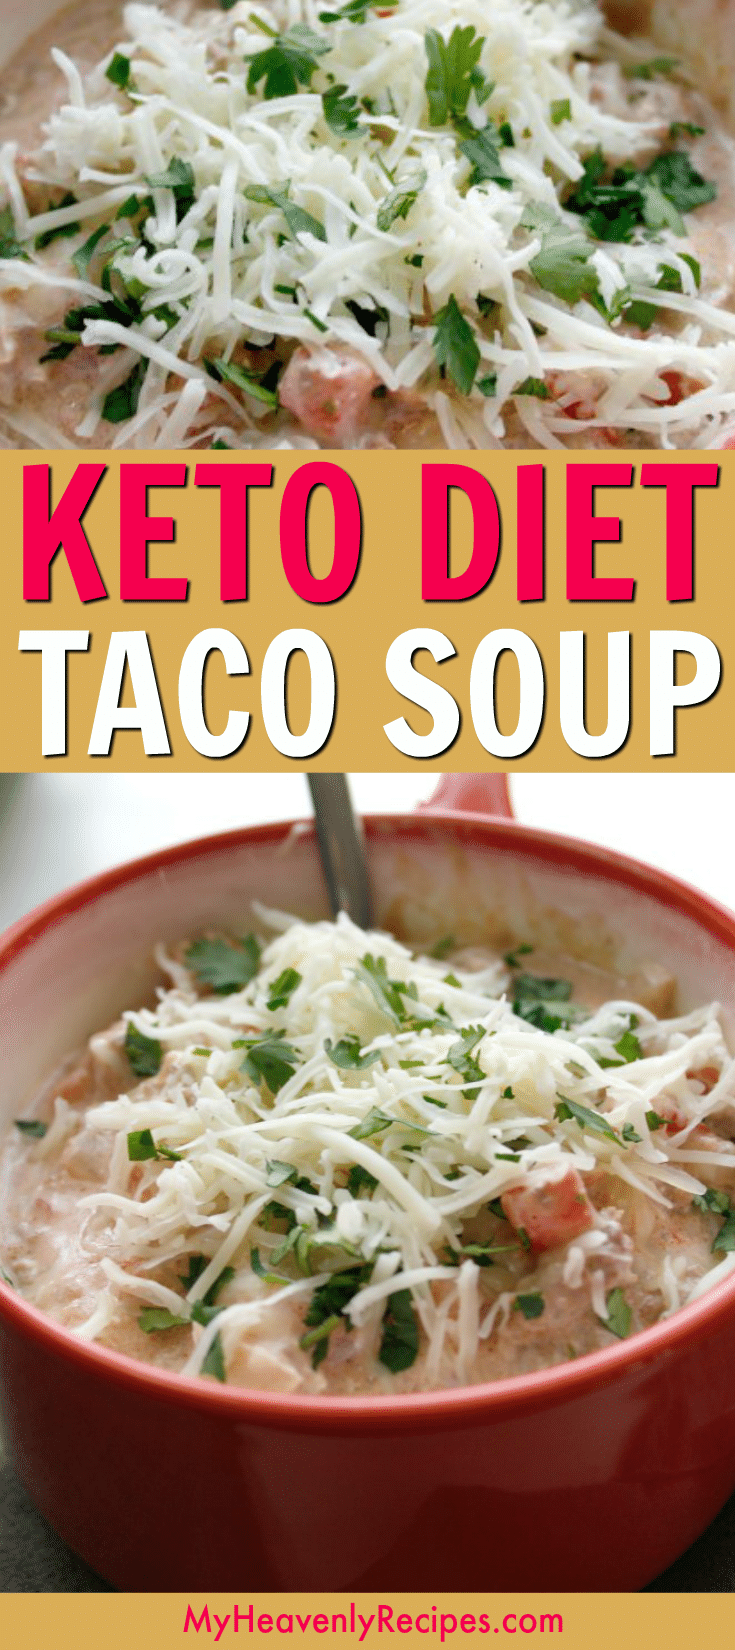 Looking for a delicious and EASY to make low-carb recipe? Try this LOW-CARB Taco Soup is thick, creamy, and so good. Make it on the stove or make it into a crock pot recipe! Perfect for the keto diet too. #lowcarb #keto #tacosoup #souprecipes #lowcarbtacosoup